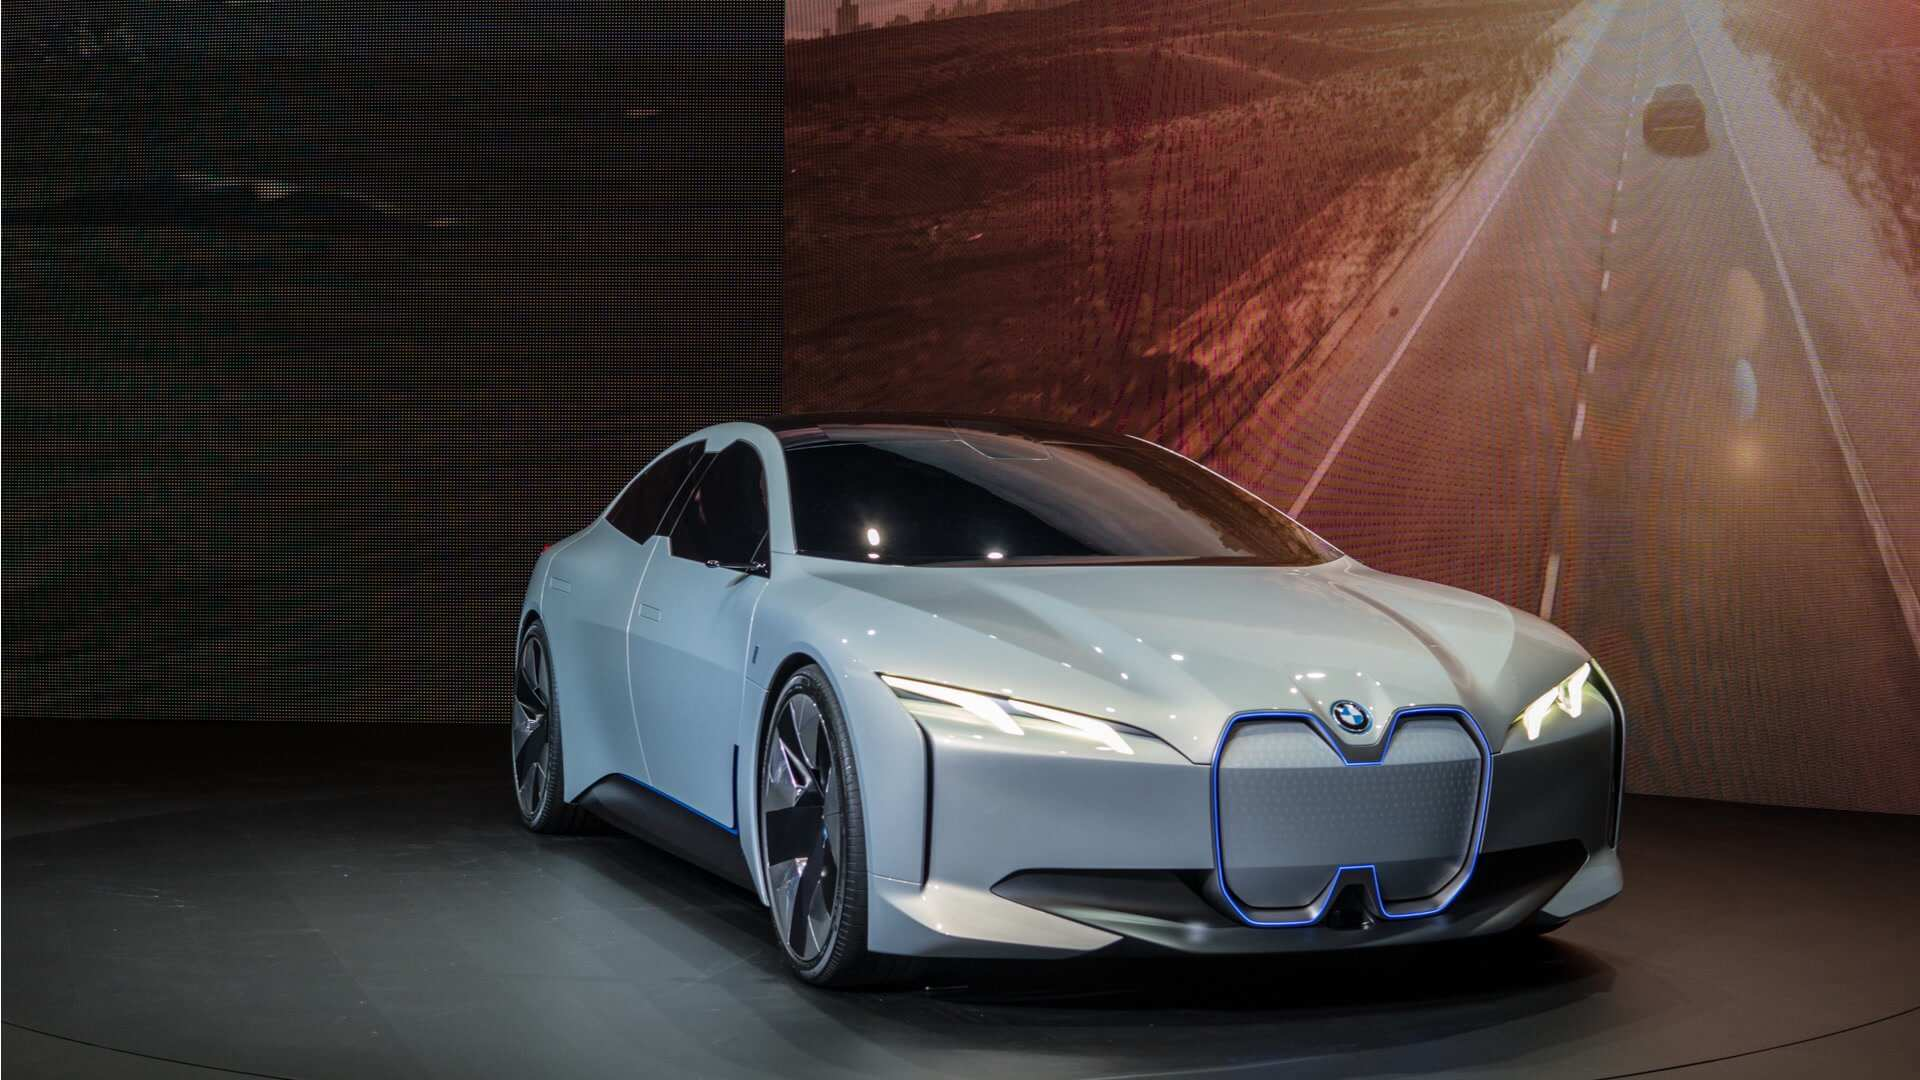 96 All New 2019 Bmw Ev Ratings by 2019 Bmw Ev